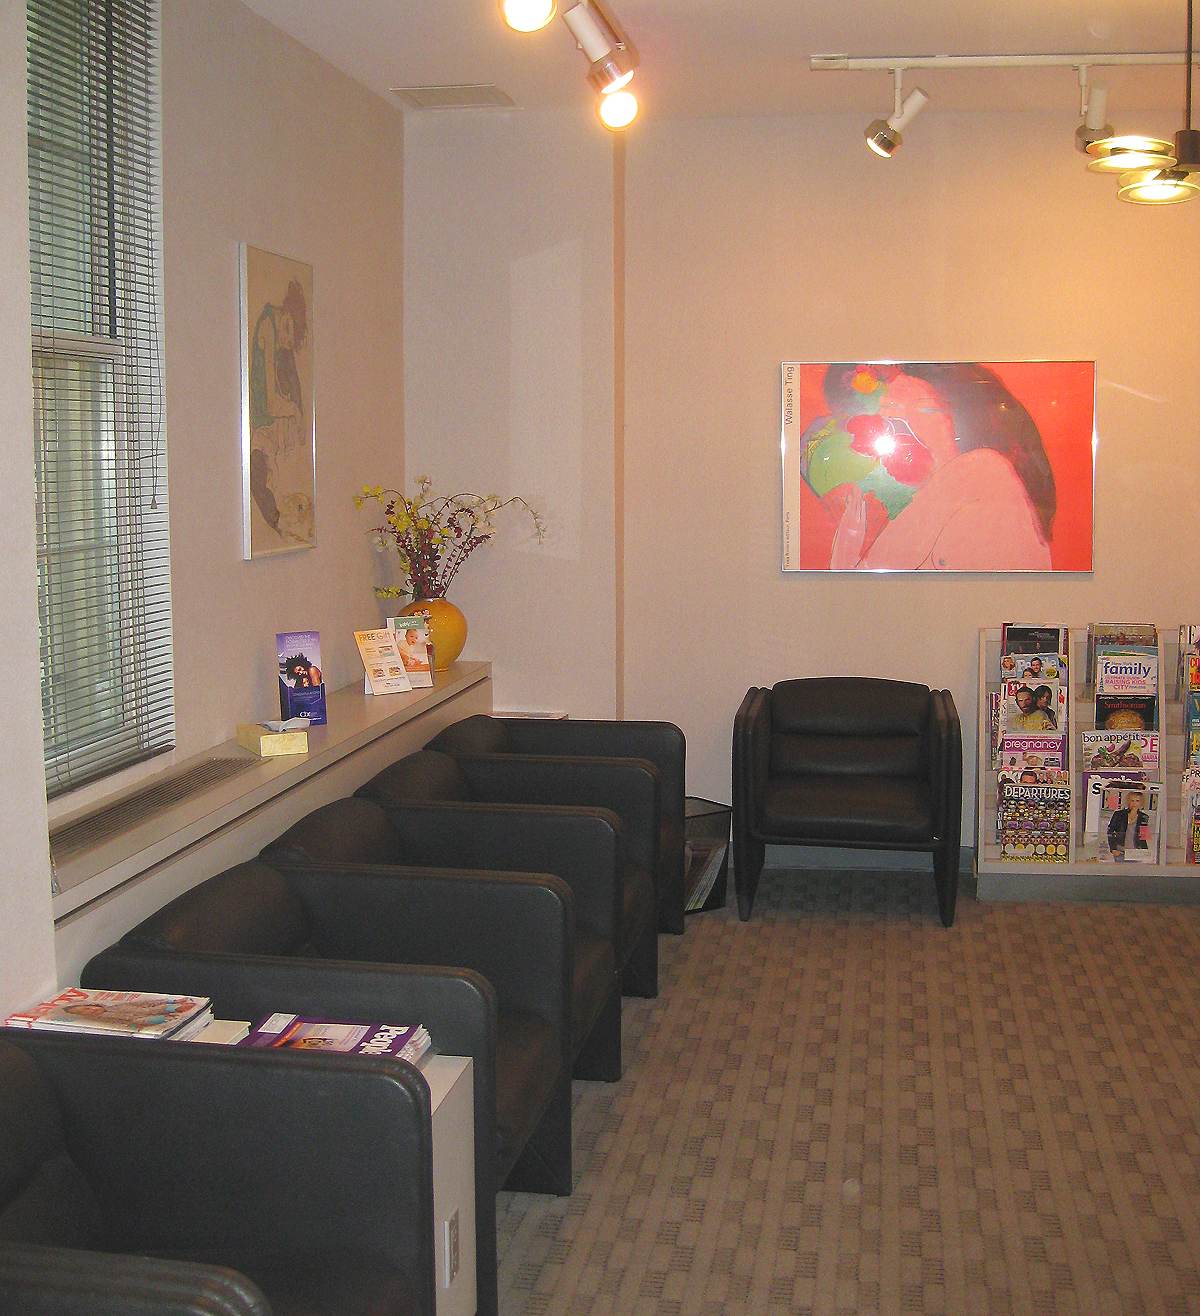 Comfortable, Relaxed Atmosphere